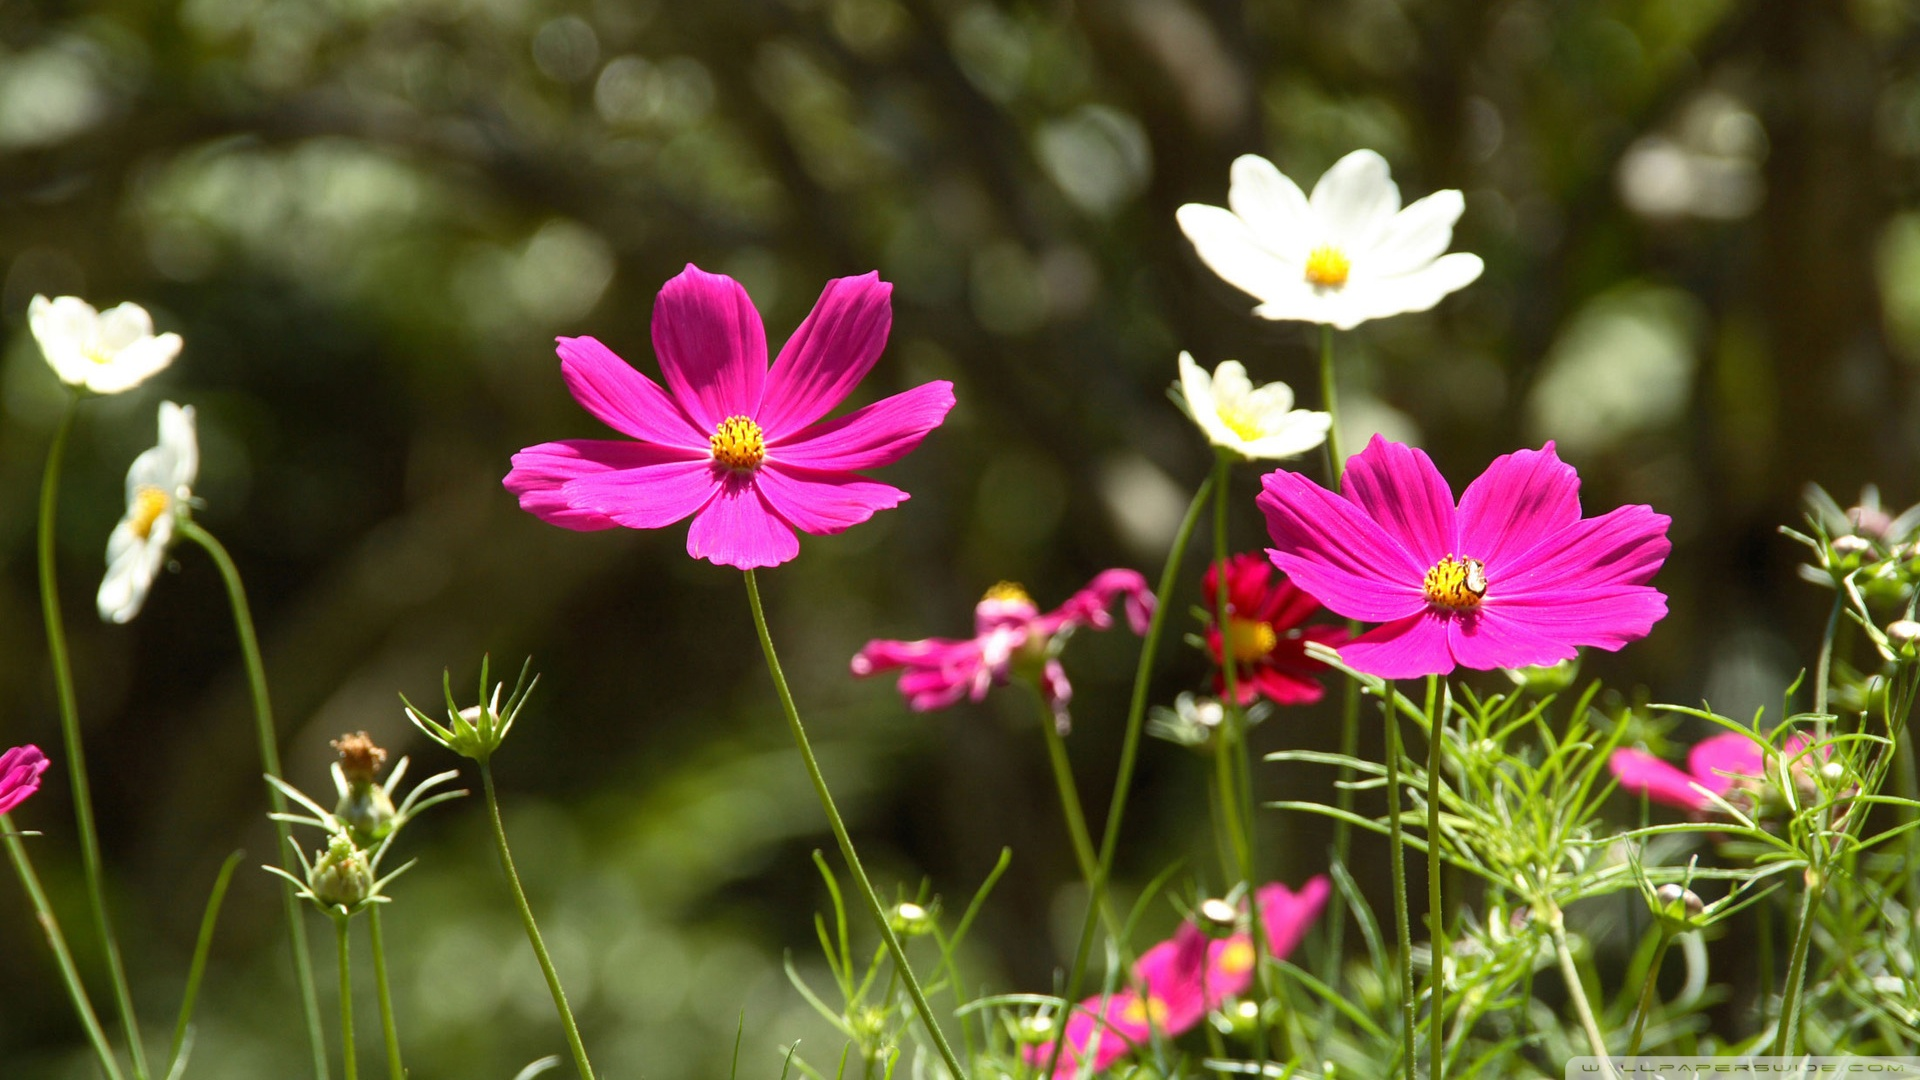 wallpapers spring flowers landscape nature wallpaper 1920x1080 1920x1080